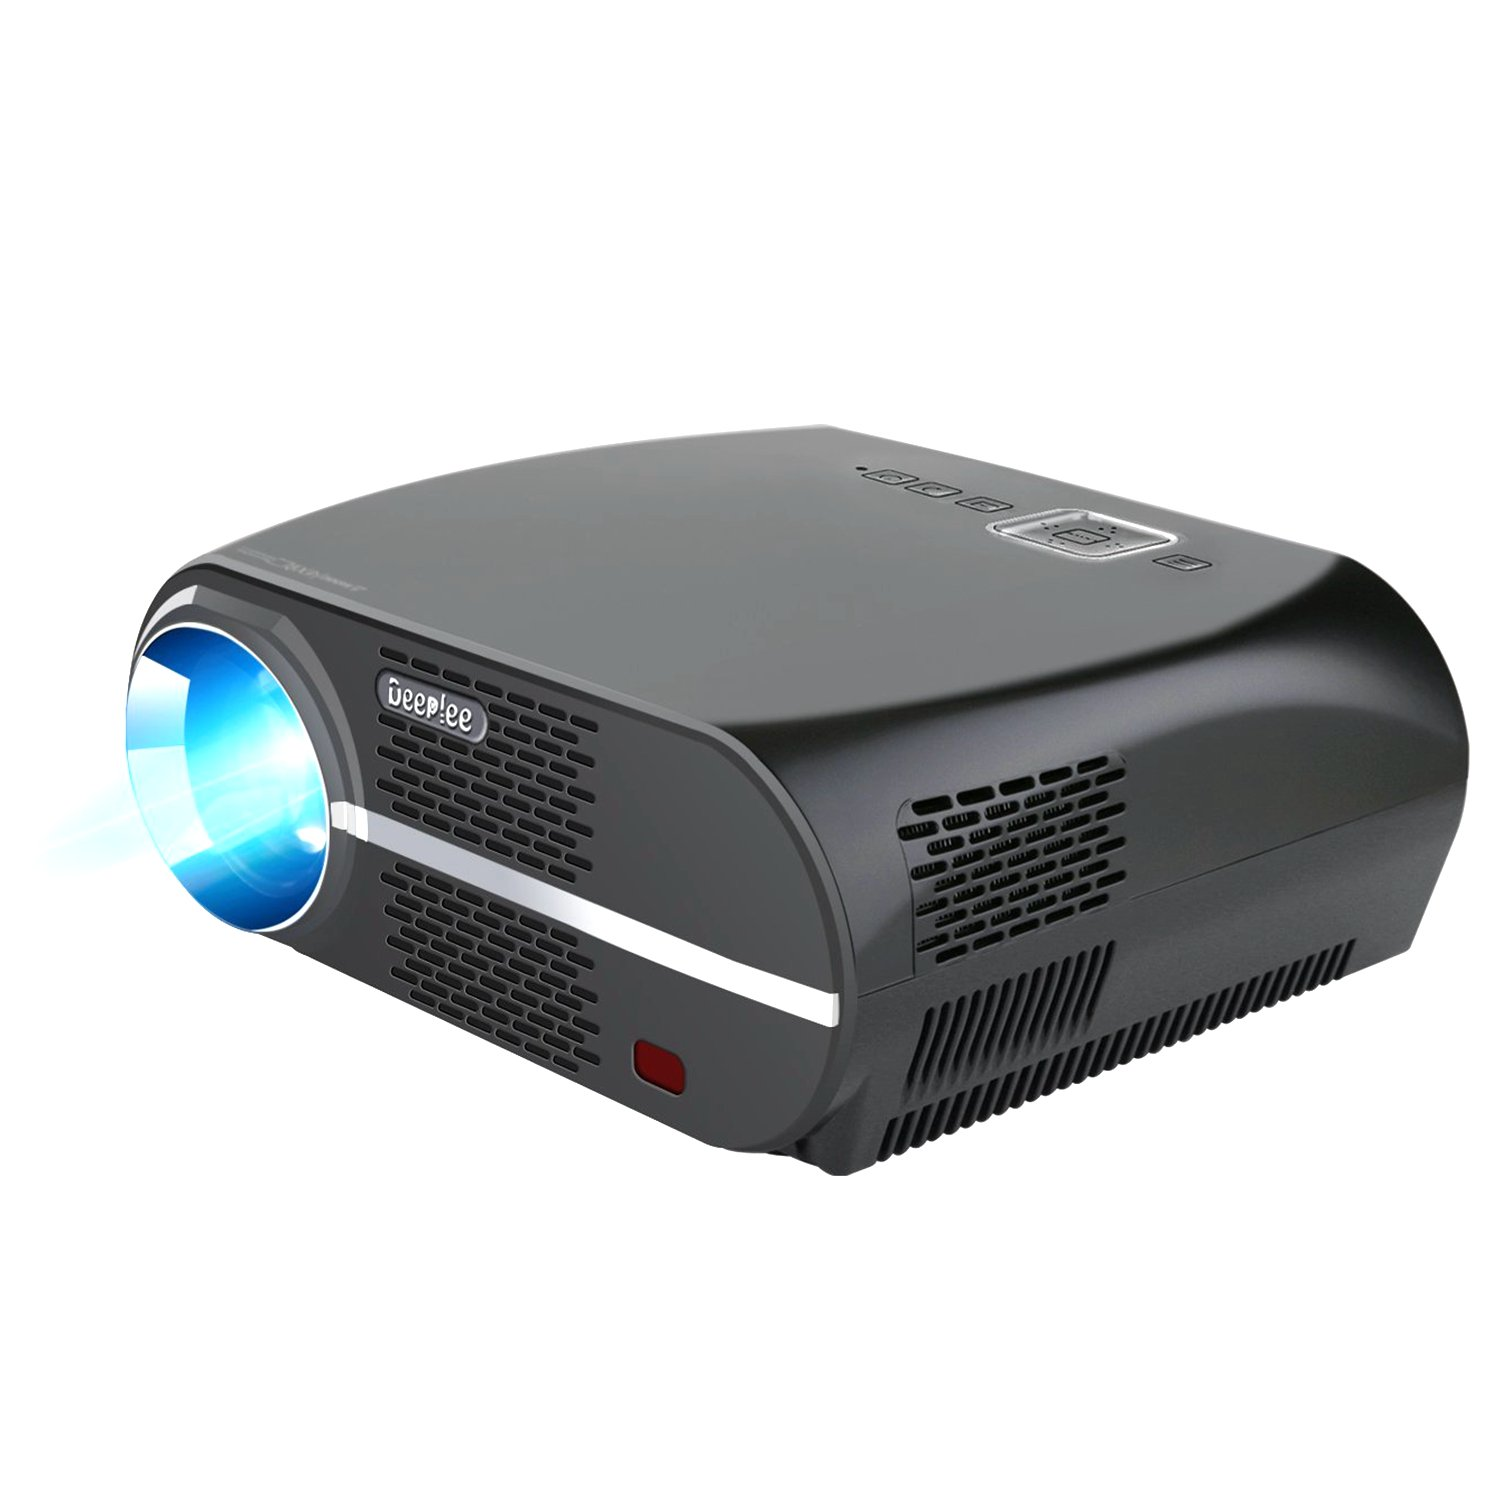 DeepLee GP100 3500 Lumens Movie LED Projector 720P for Phone/Laptop/USB Flash Drive/Dongle/Game Console with HDMI USB AV VGA AUX, Works with EVERYTHING with High Brightness and Clearness